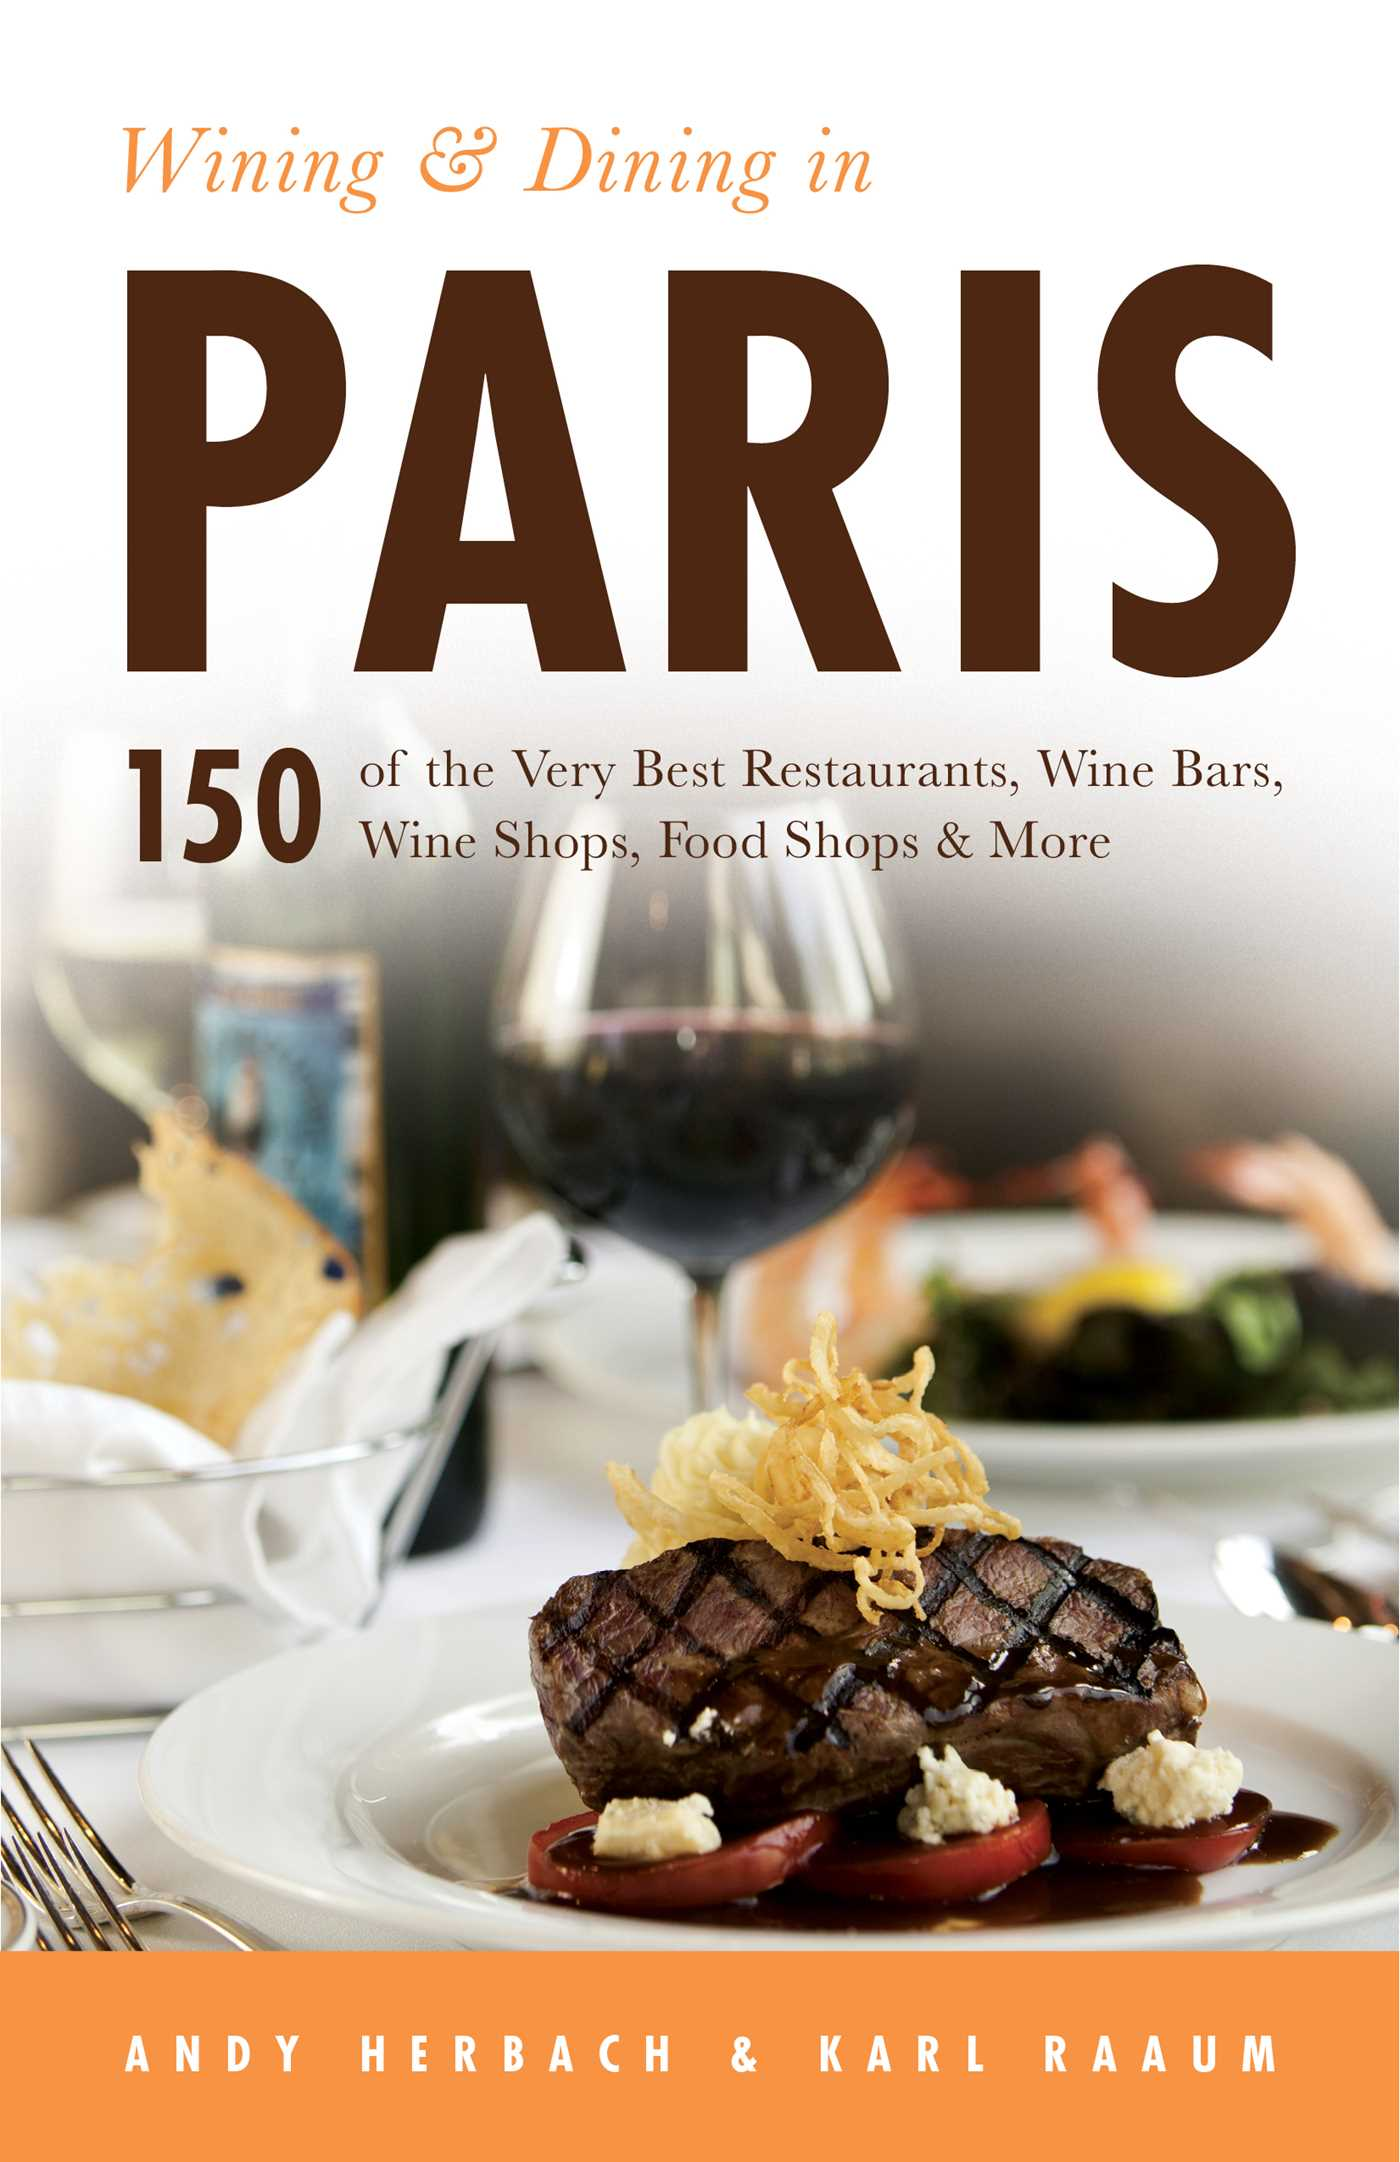 Wining-dining-in-paris-9781593602130_hr